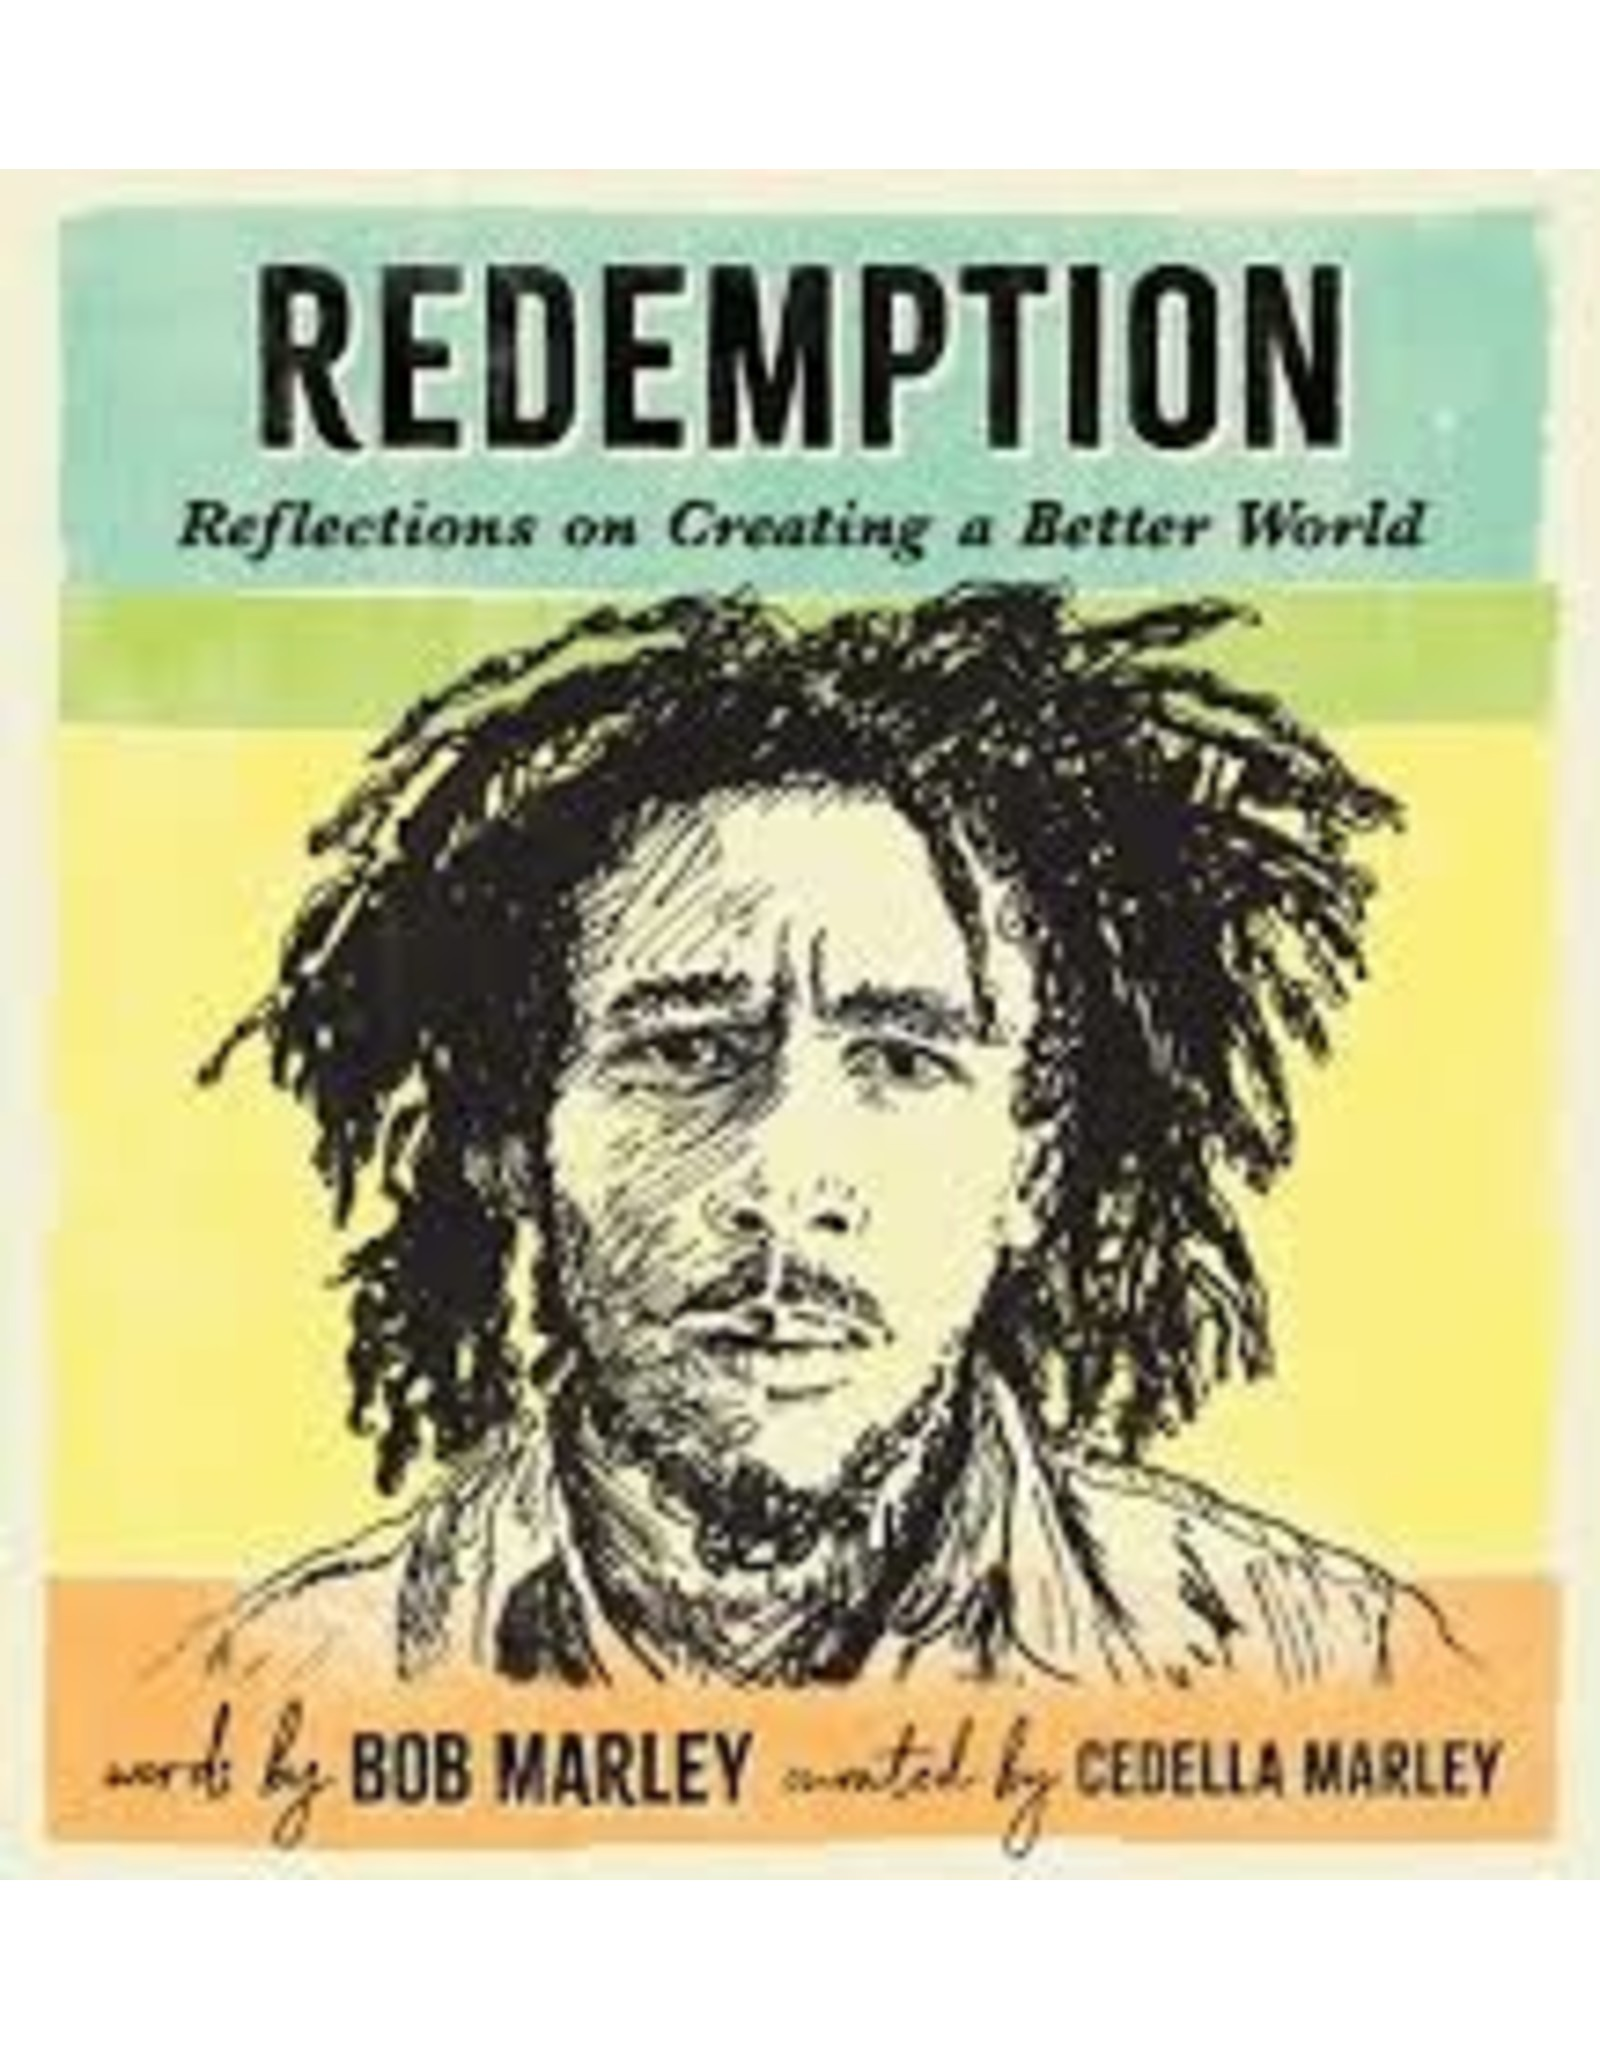 Books Redemption: Reflections on Creating a Better World  words by Bob Marley & Curated by Cedella Marley (use discount code one love)